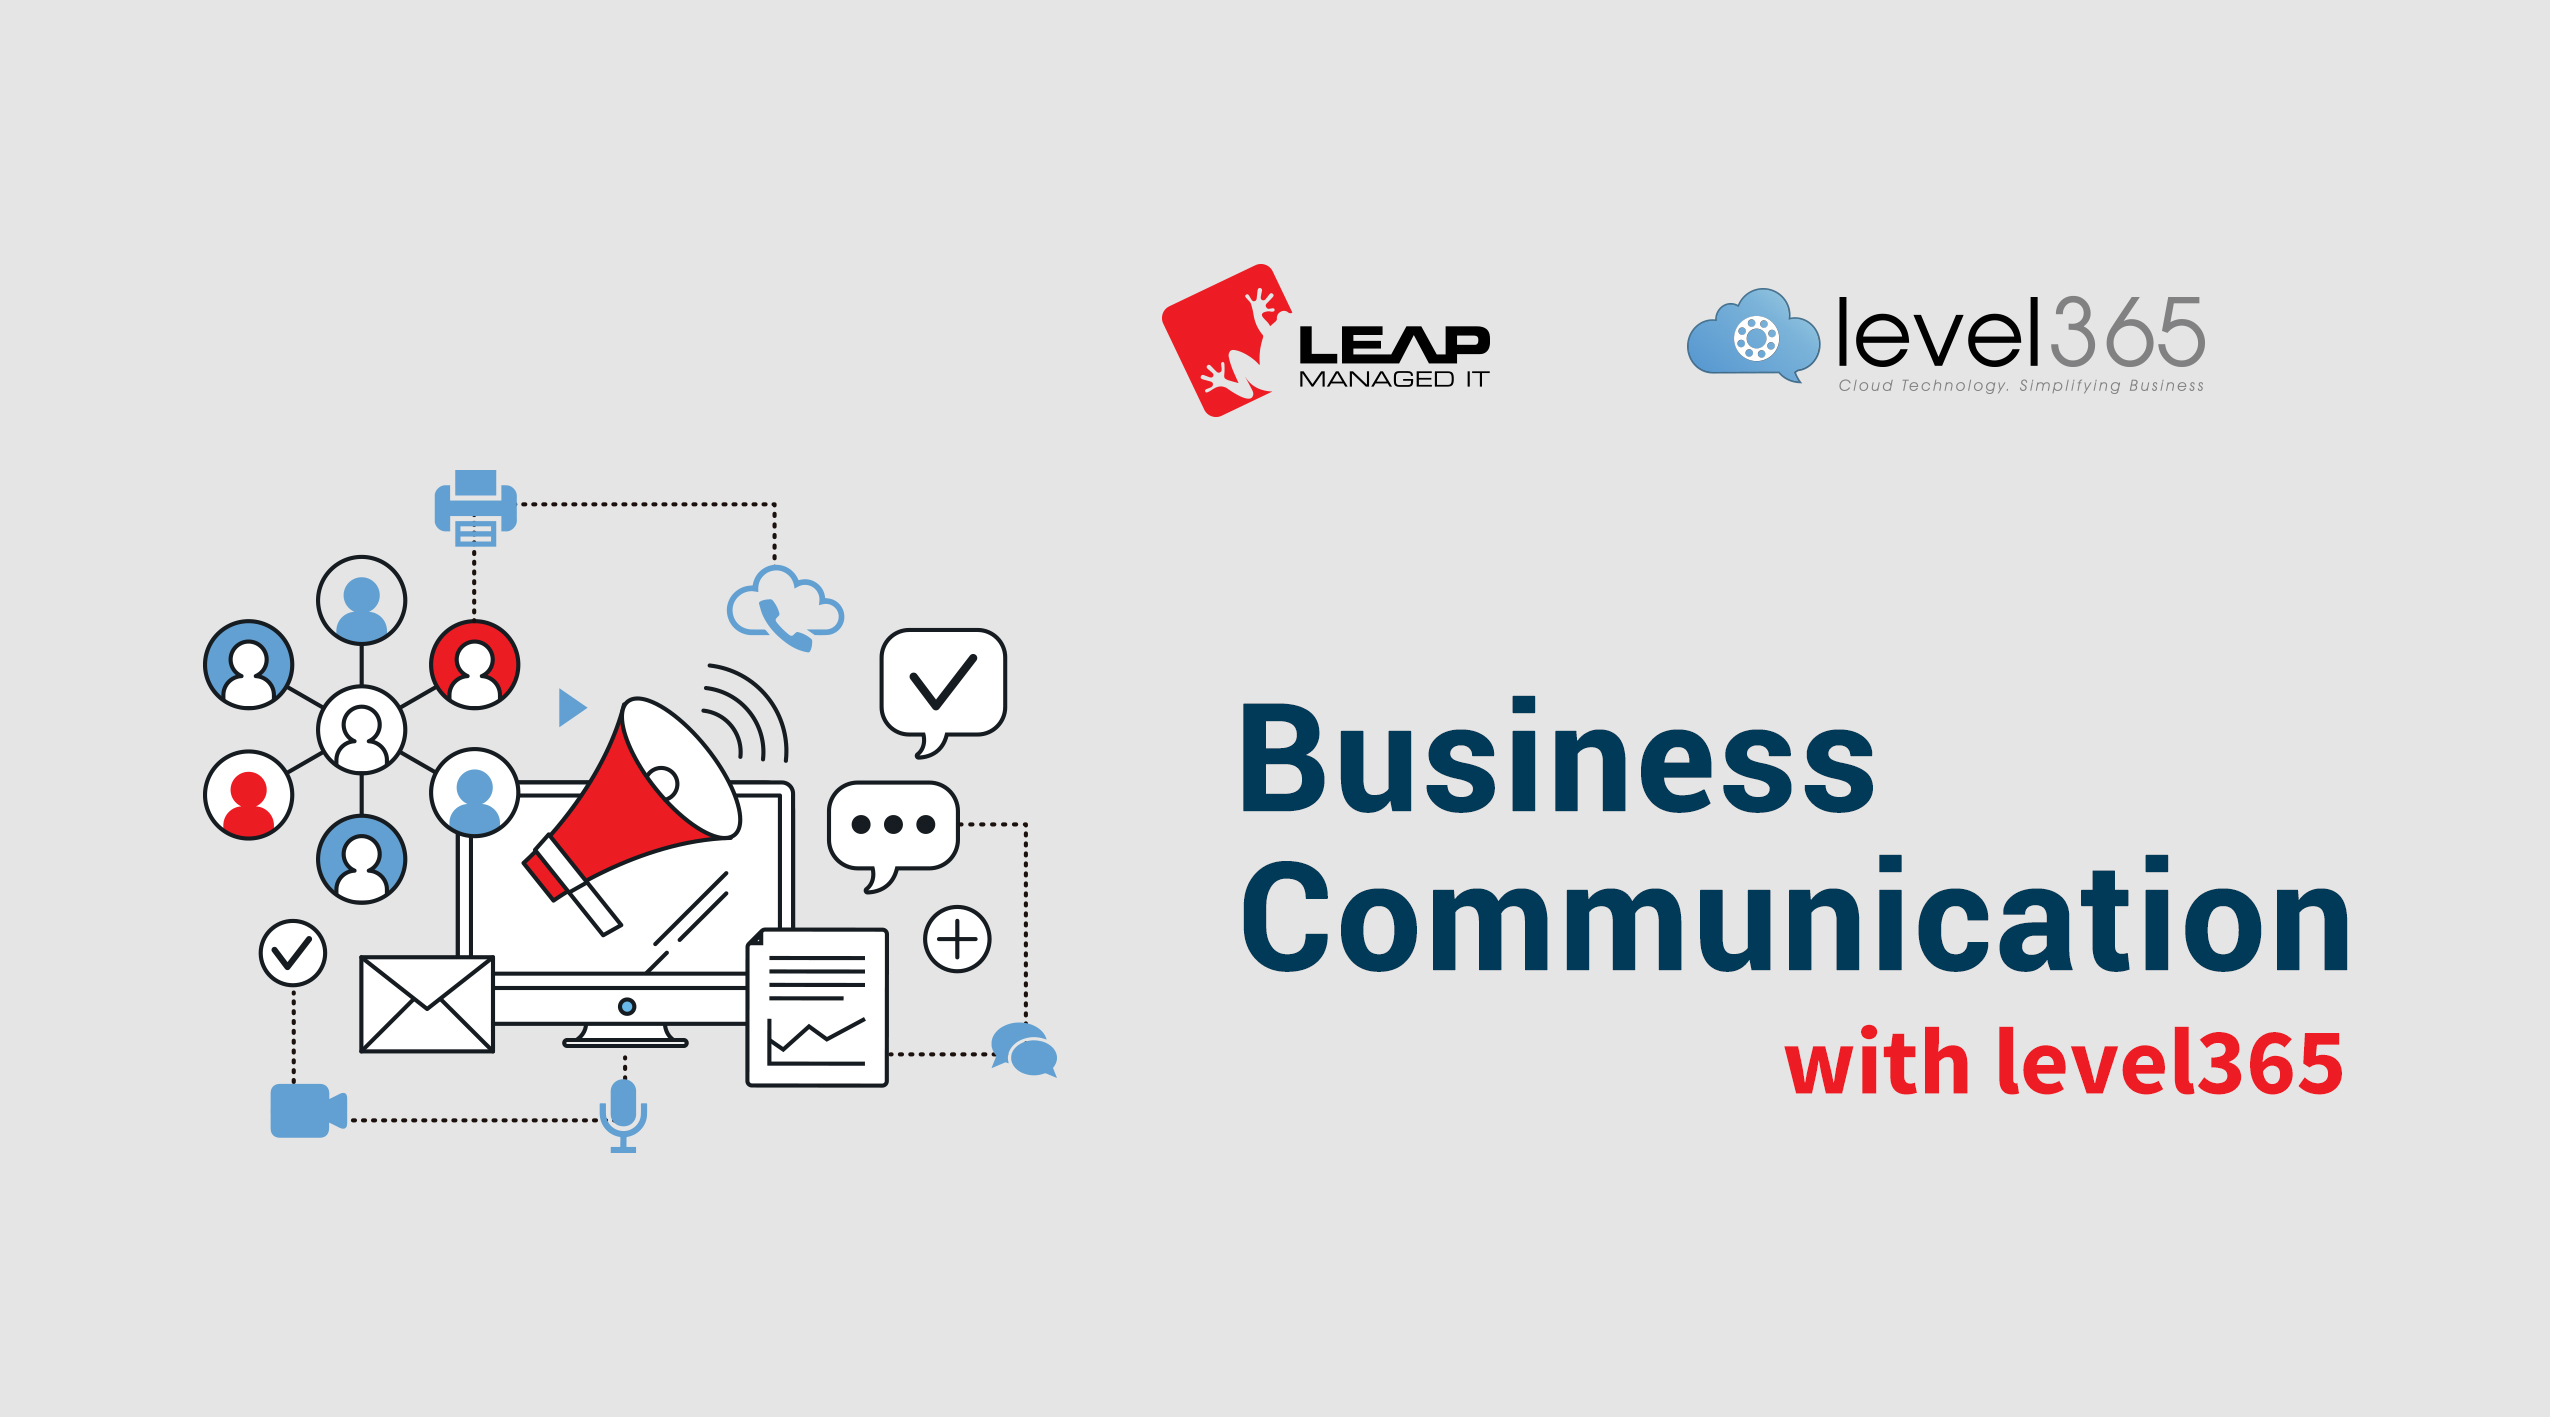 Business Communication with Level365